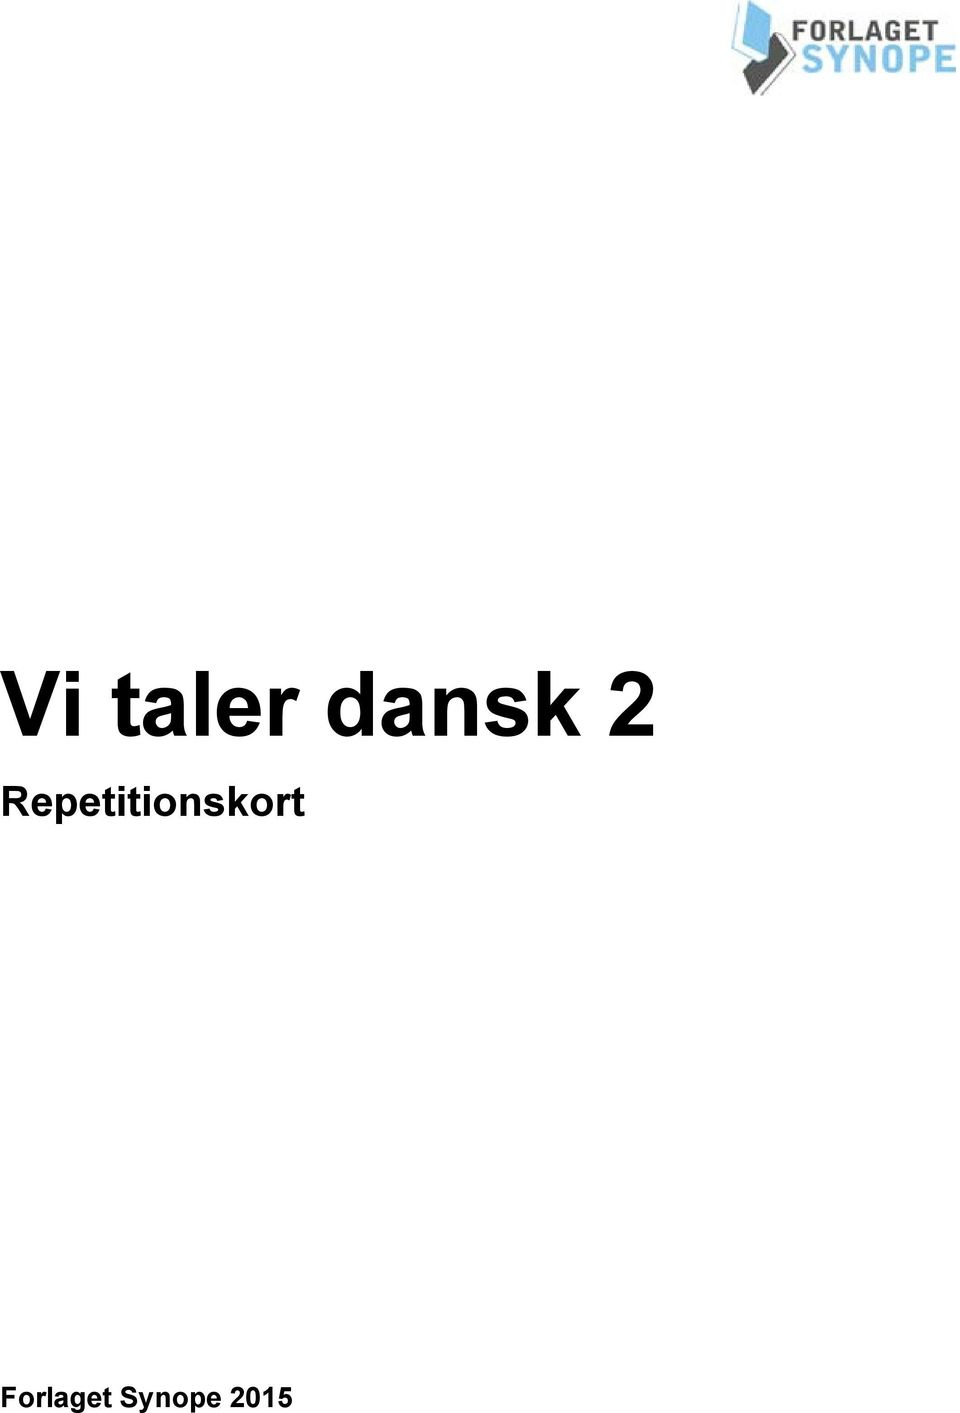 Repetitionskort